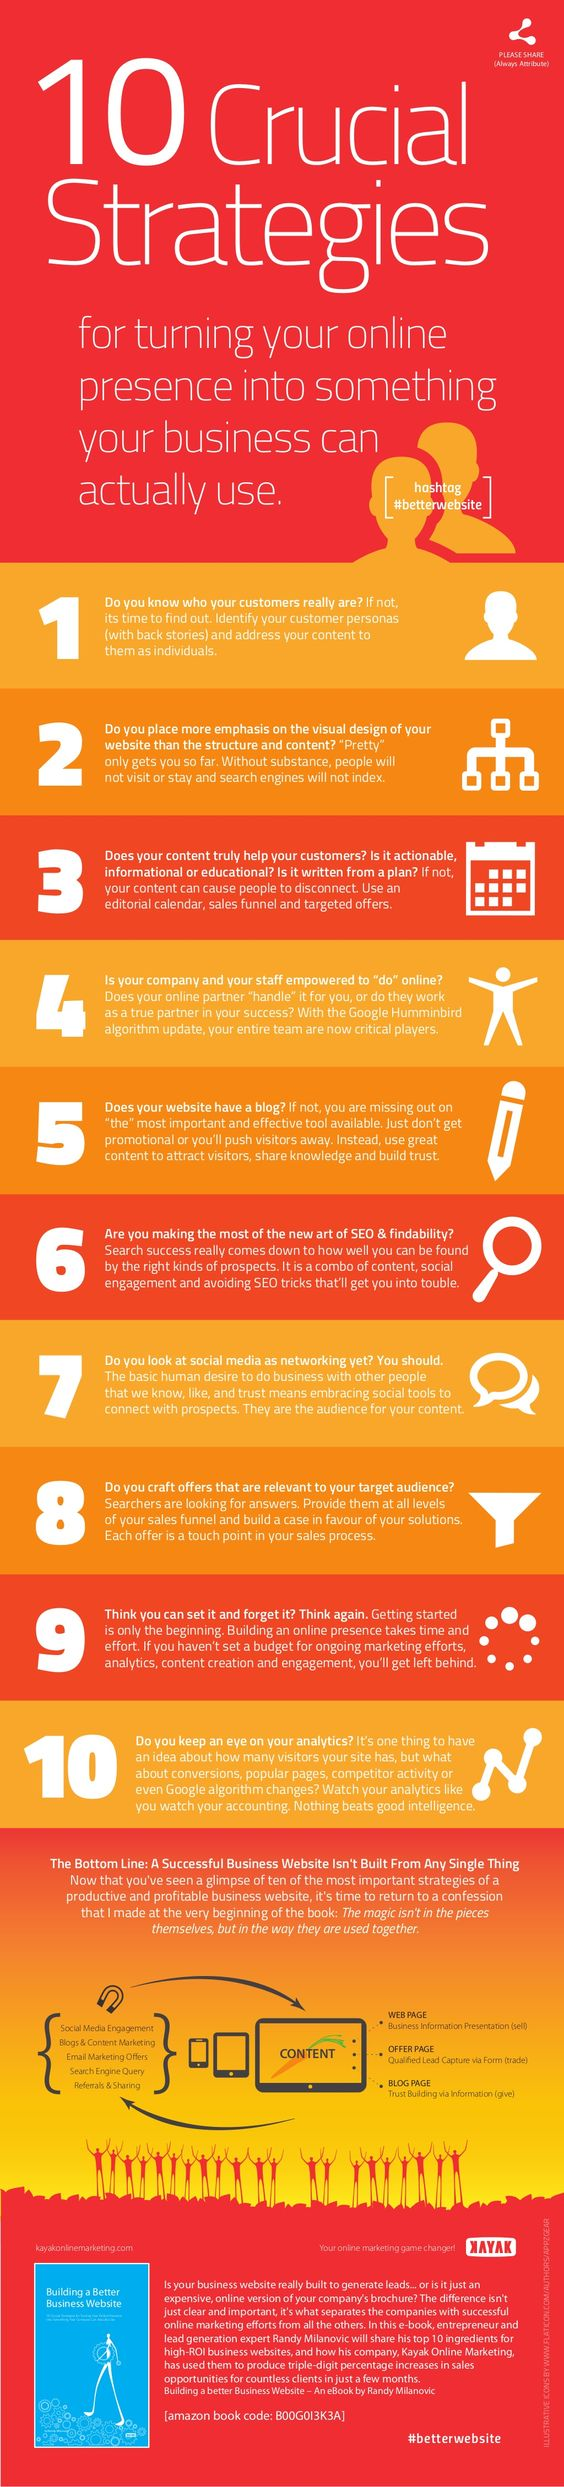 #marketing #infographic #strategy